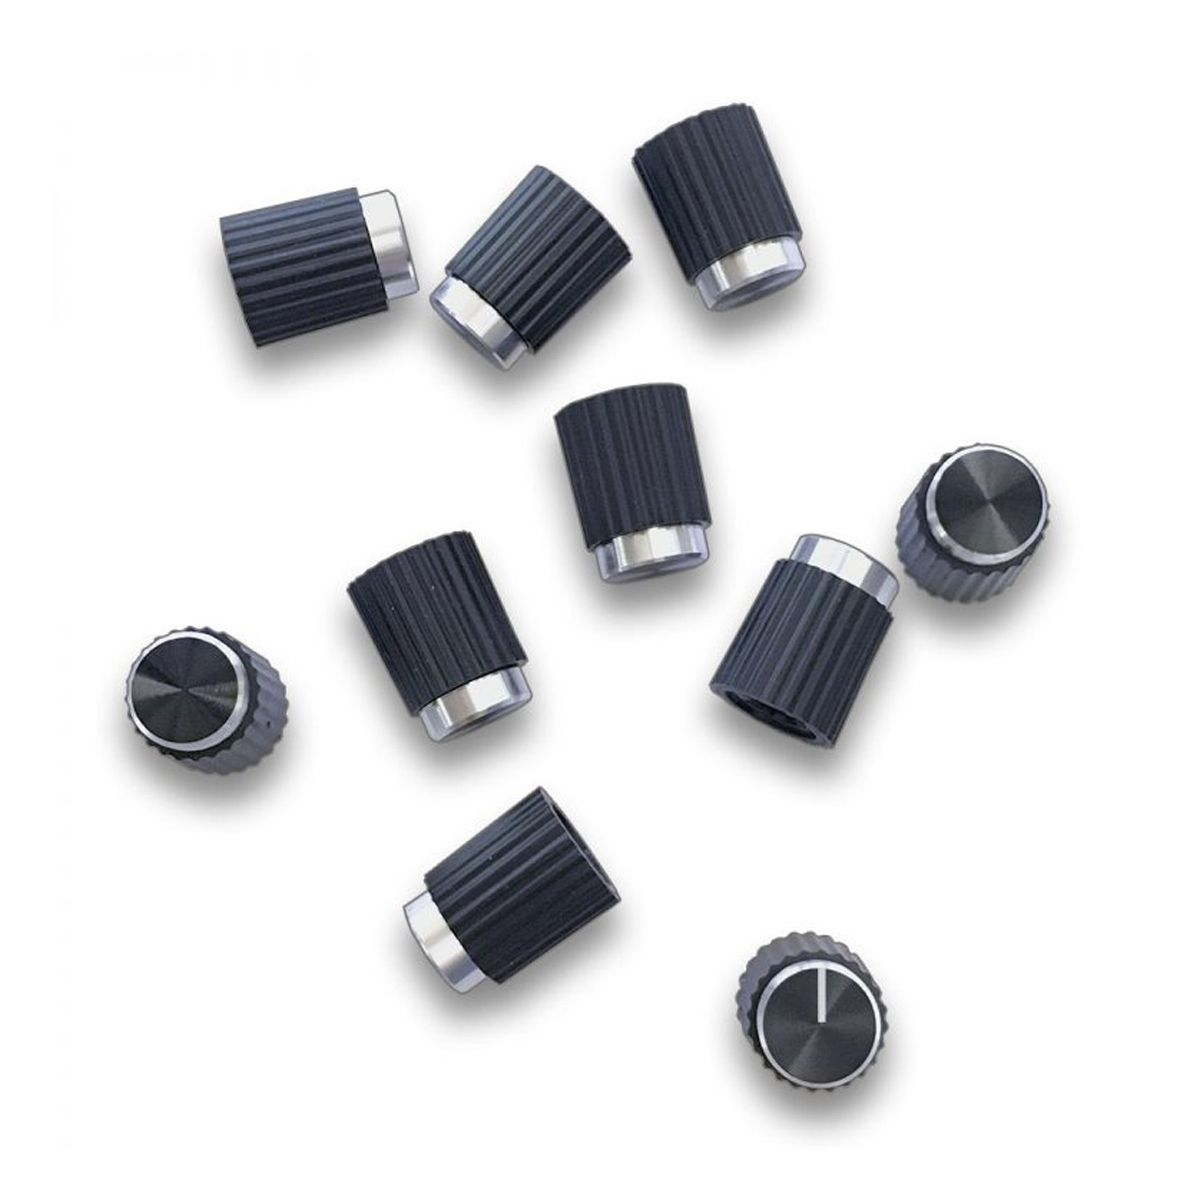 Sequential Tempest Replacement Knob Kit